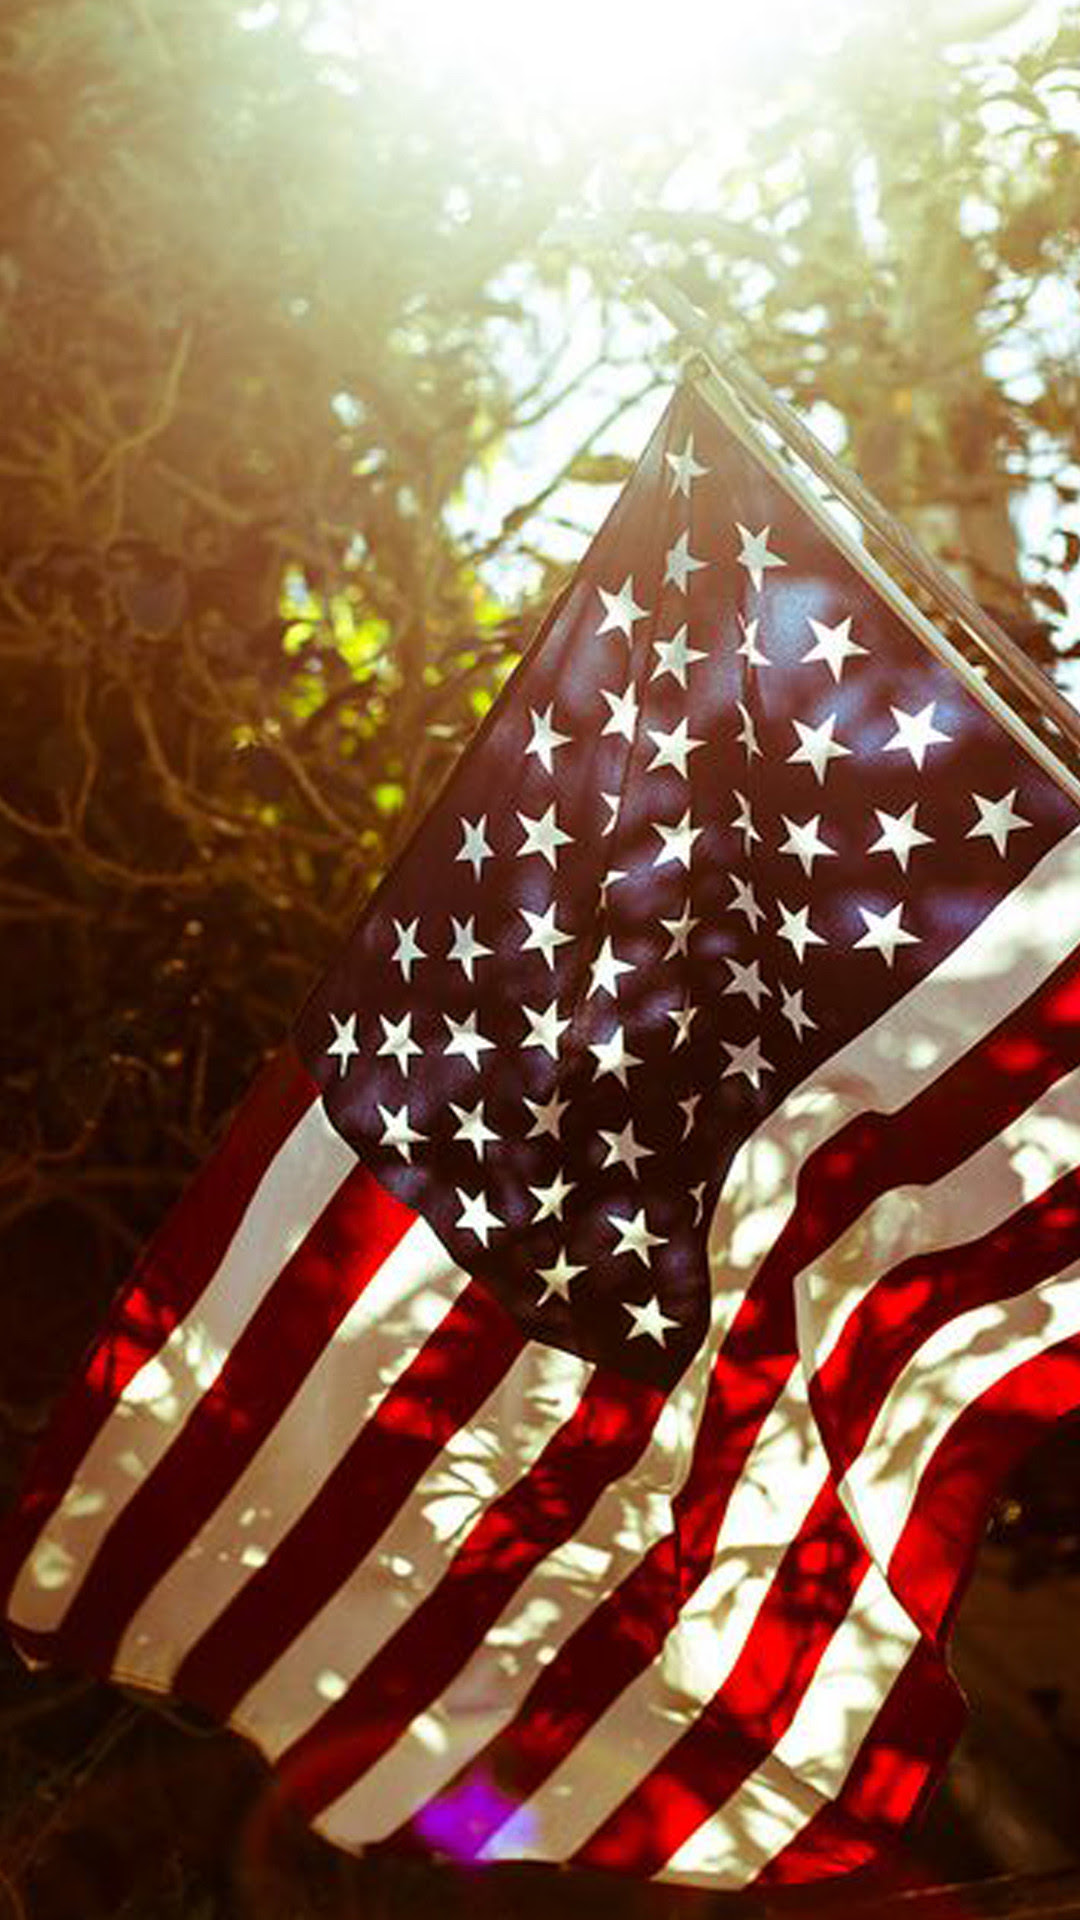 American Flag Iphone 5 Wallpaper 66 Images